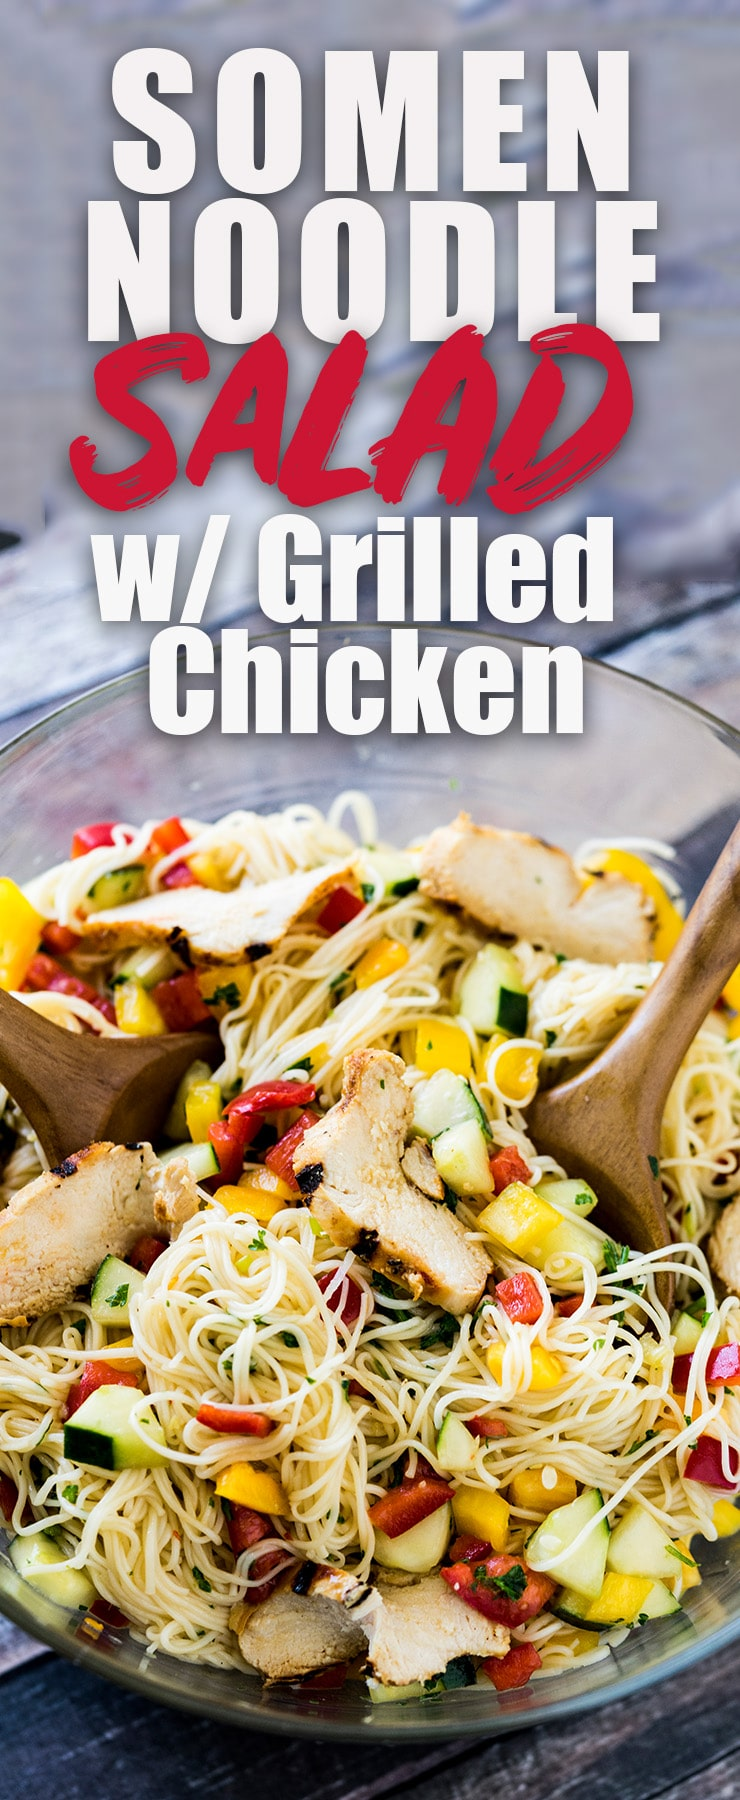 Somen Noodle Salad with grilled chicken is a light and crisp meal that is perfect for potlucks or a casual one-bowl weeknight dinner. #somen #soba #grilled #salad #chinesechicken